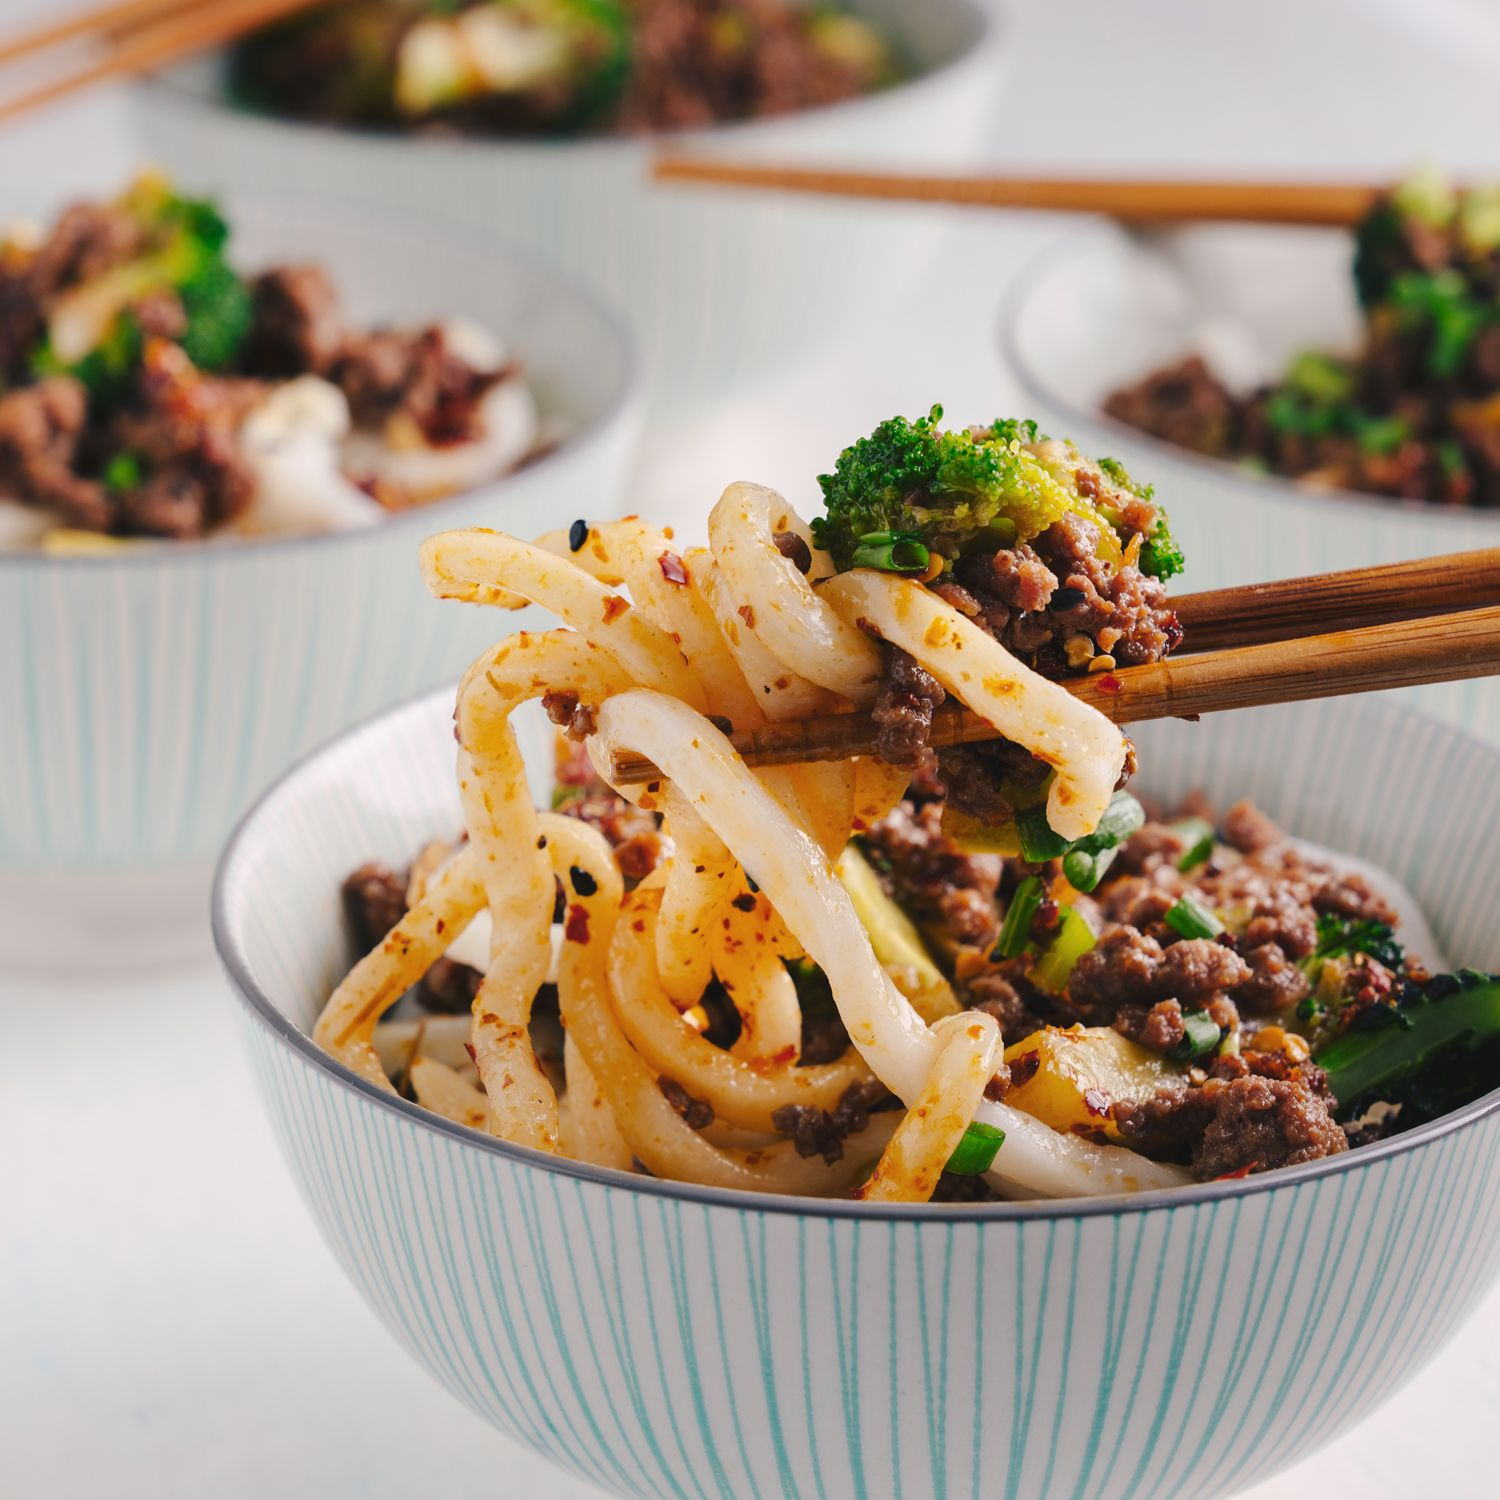 Beef Broccoli Noodles In 2020 Broccoli Beef Minced Beef Recipes Asian Recipes